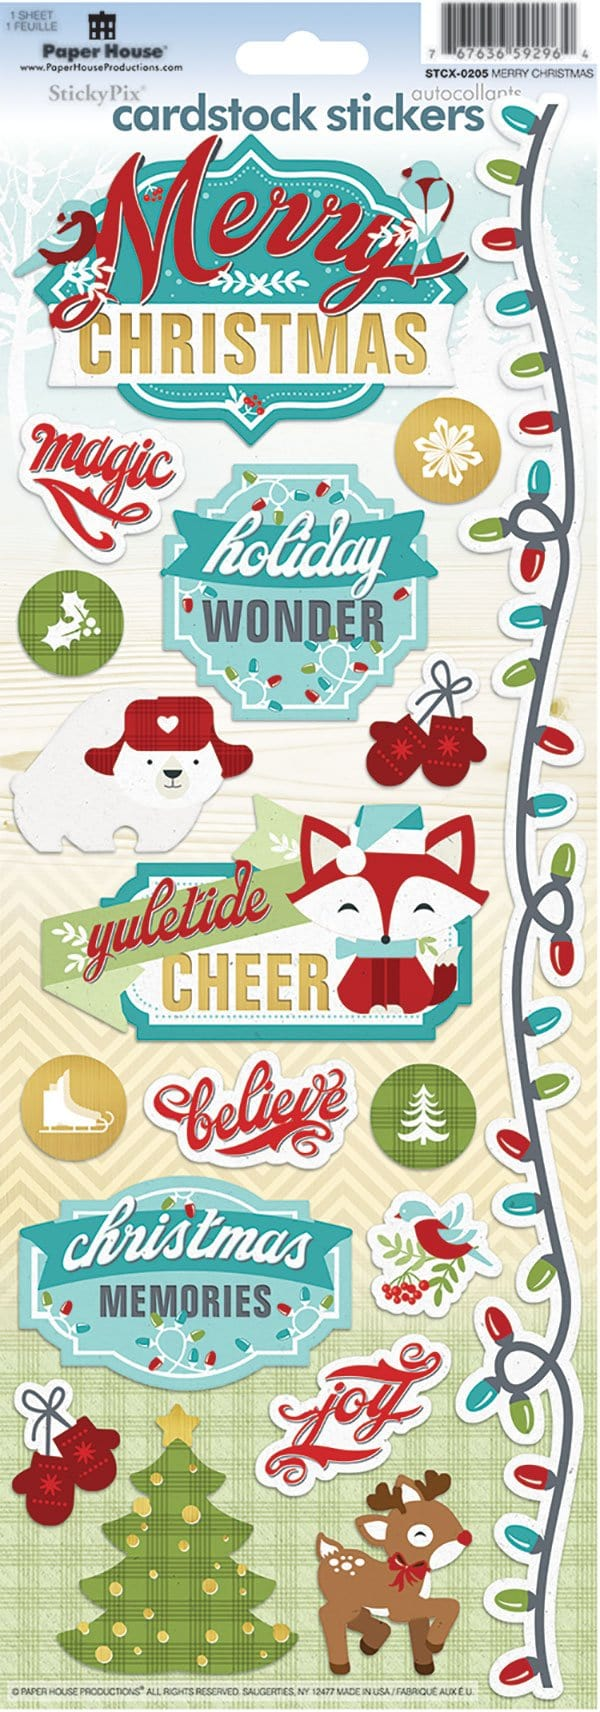 Merry Christmas Cardstock Stickers